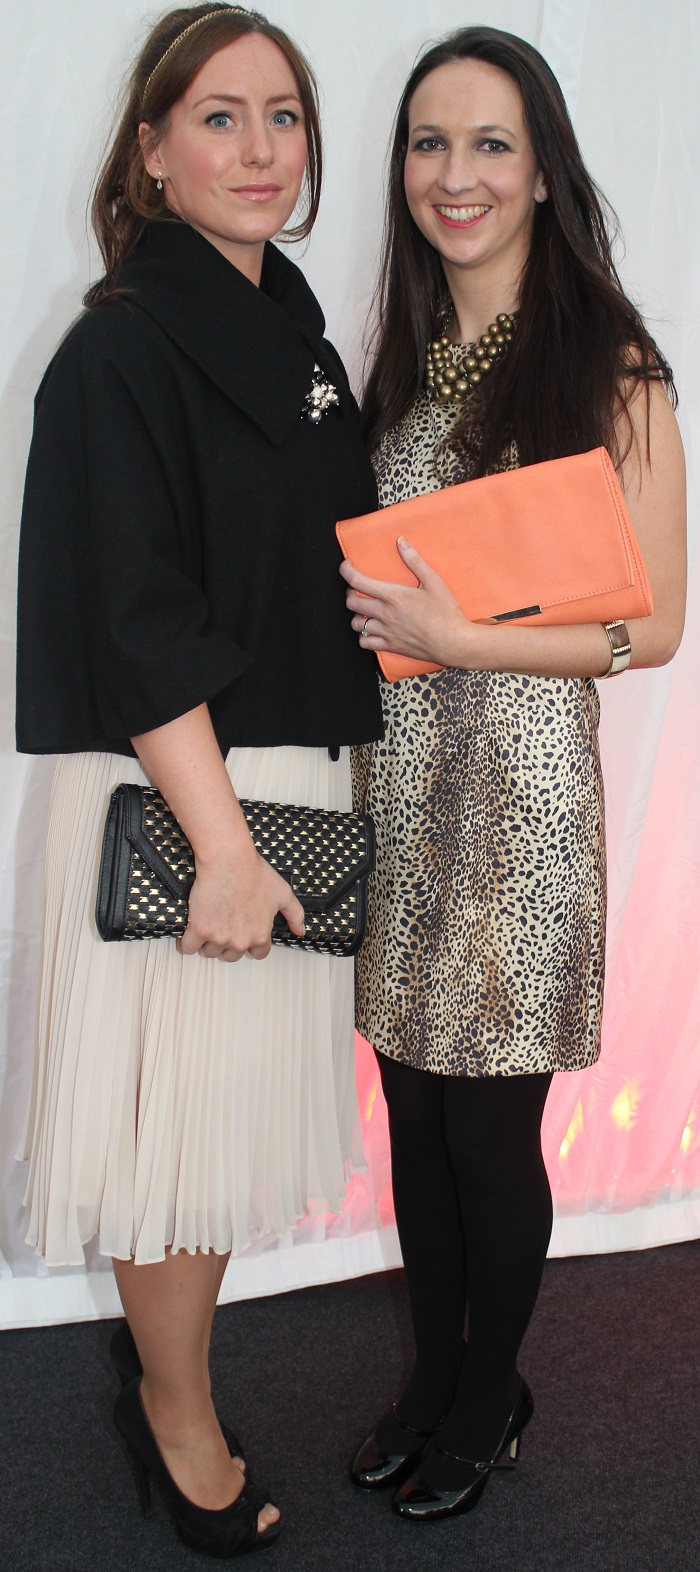 At the Rose Fashion show were, from left: Niamh Keohane and Maria O'Mara. Photo by Gavin O'Connor.